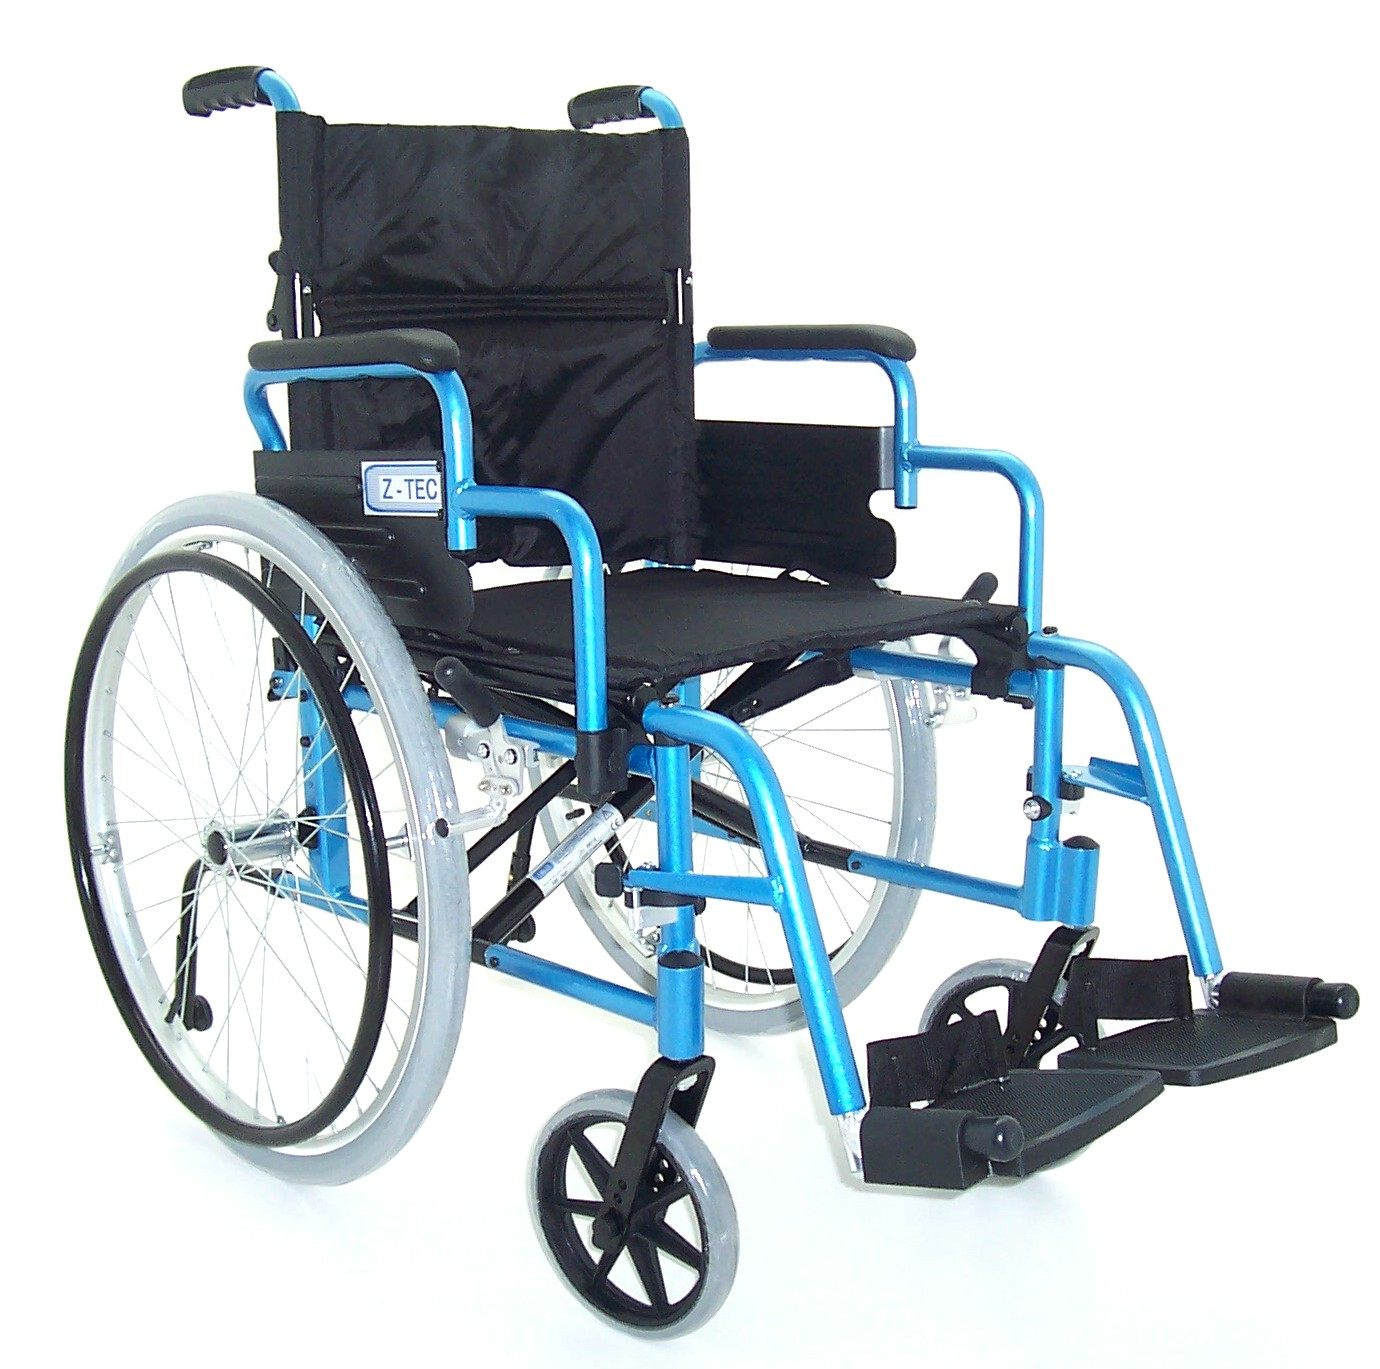 Carefulmobility - Mobility Support For You